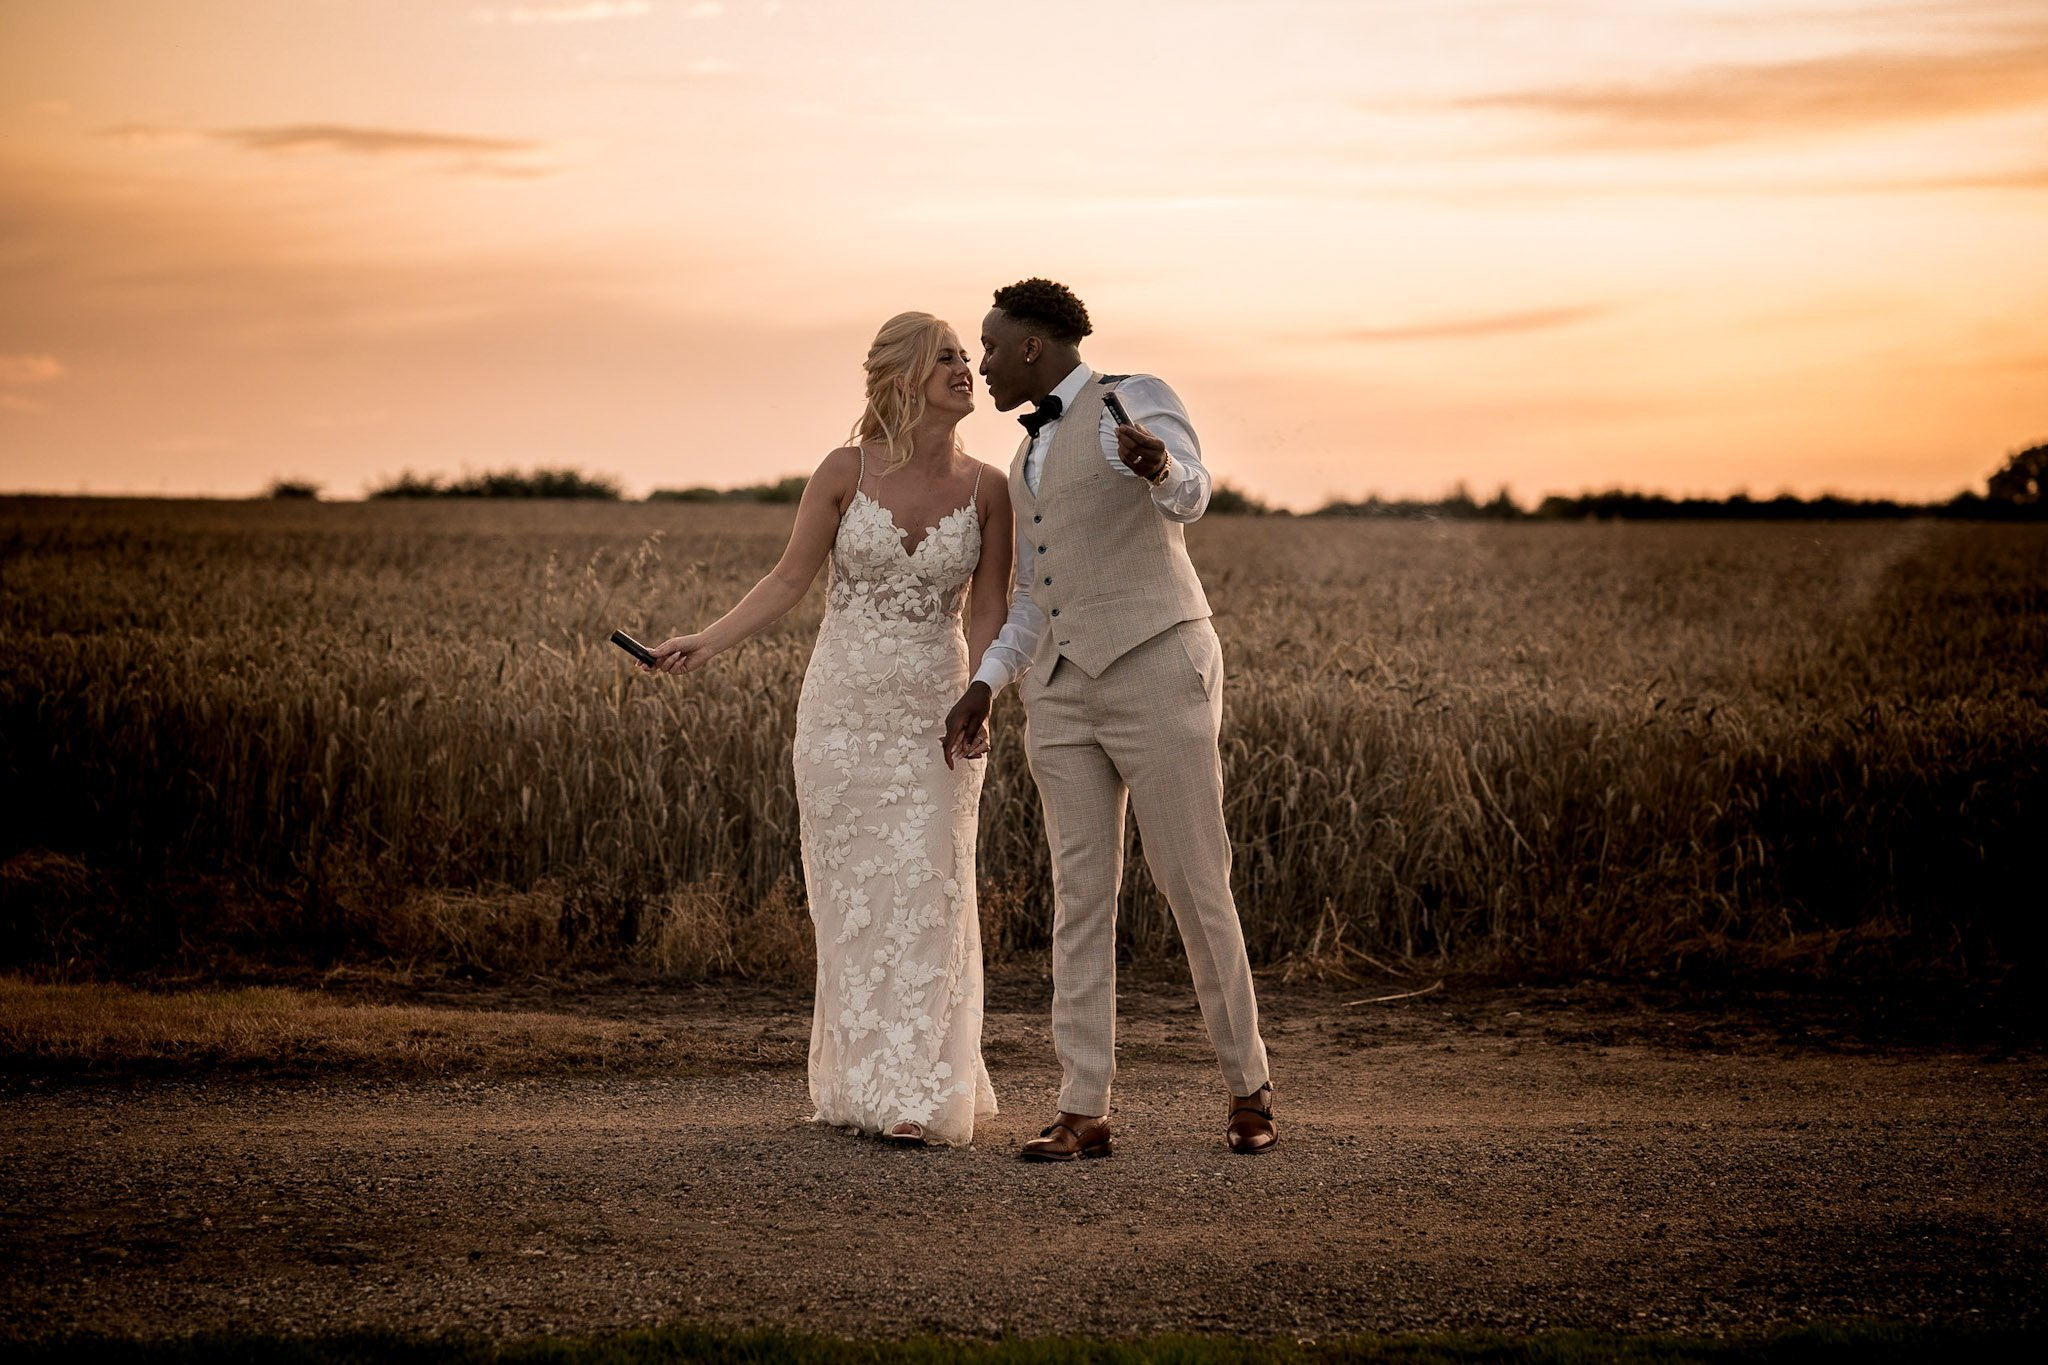 Your Favourite Frame YFFUK Mwasuku Norton Fields Atherstone sunset in front of the wheat fields golden skies groom and bride leaning close